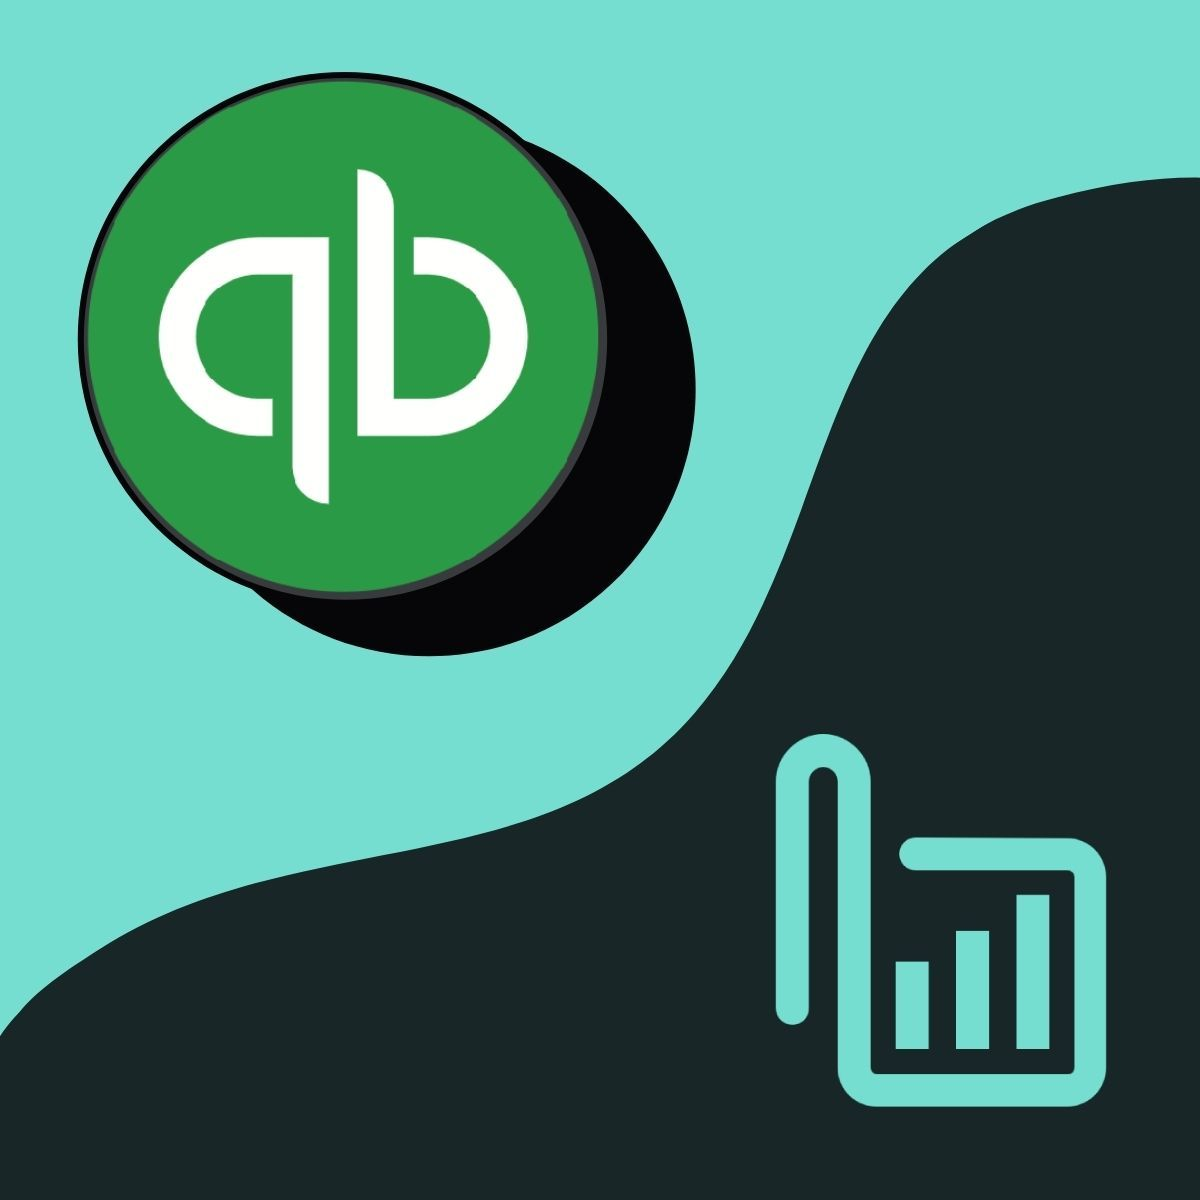 Shopify Quickbooks Online Apps by Bookkeep.com inc.